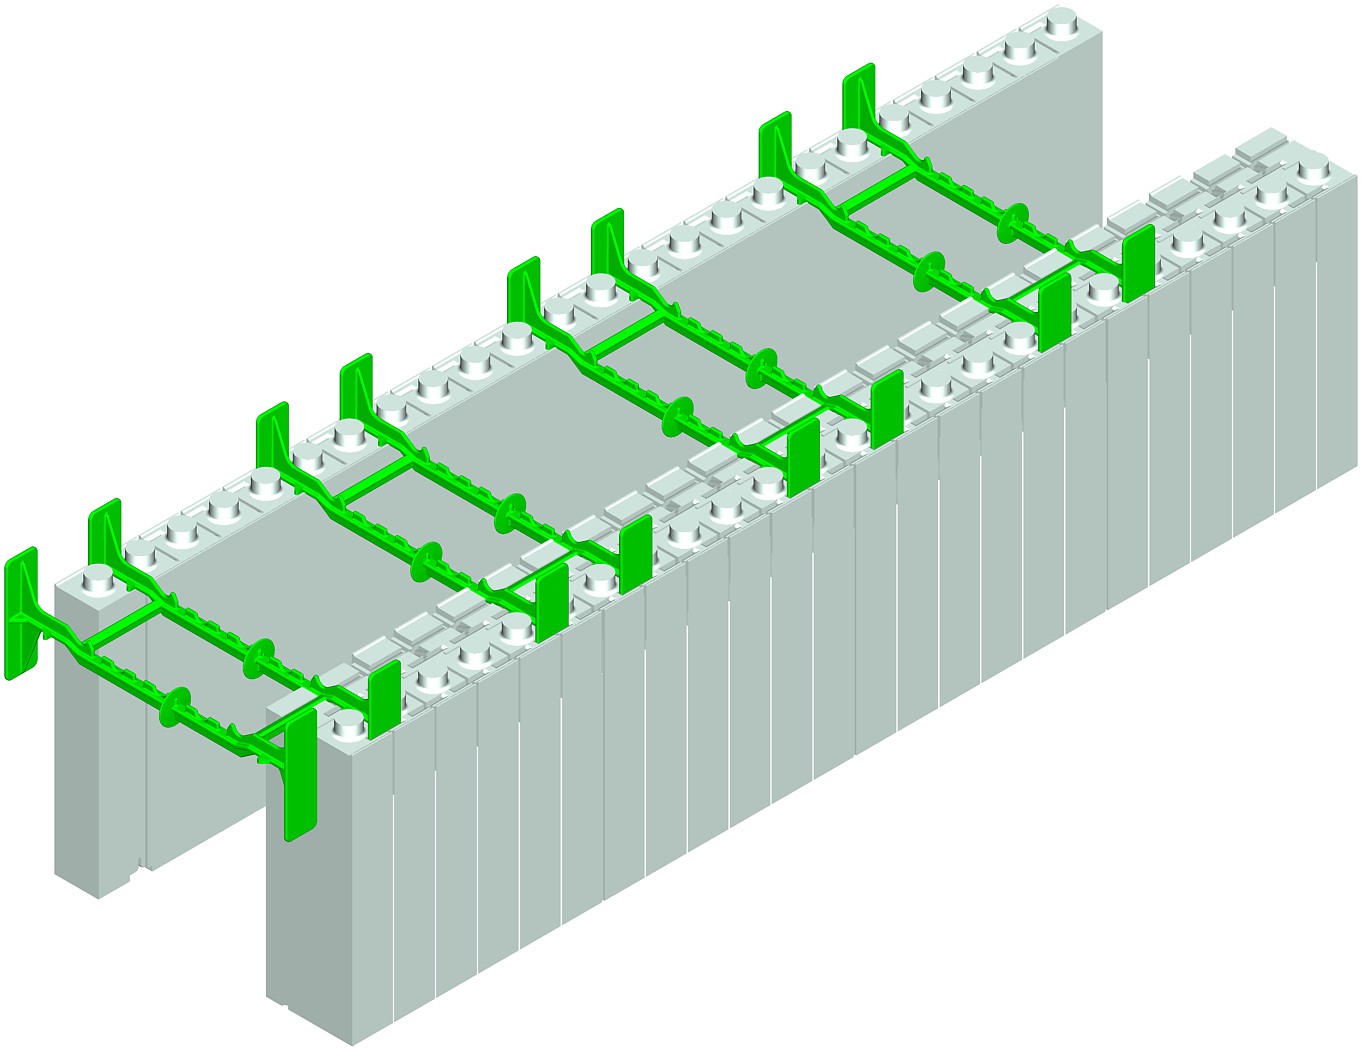 Presse Release Icf Extra Insulation With Plus Panels